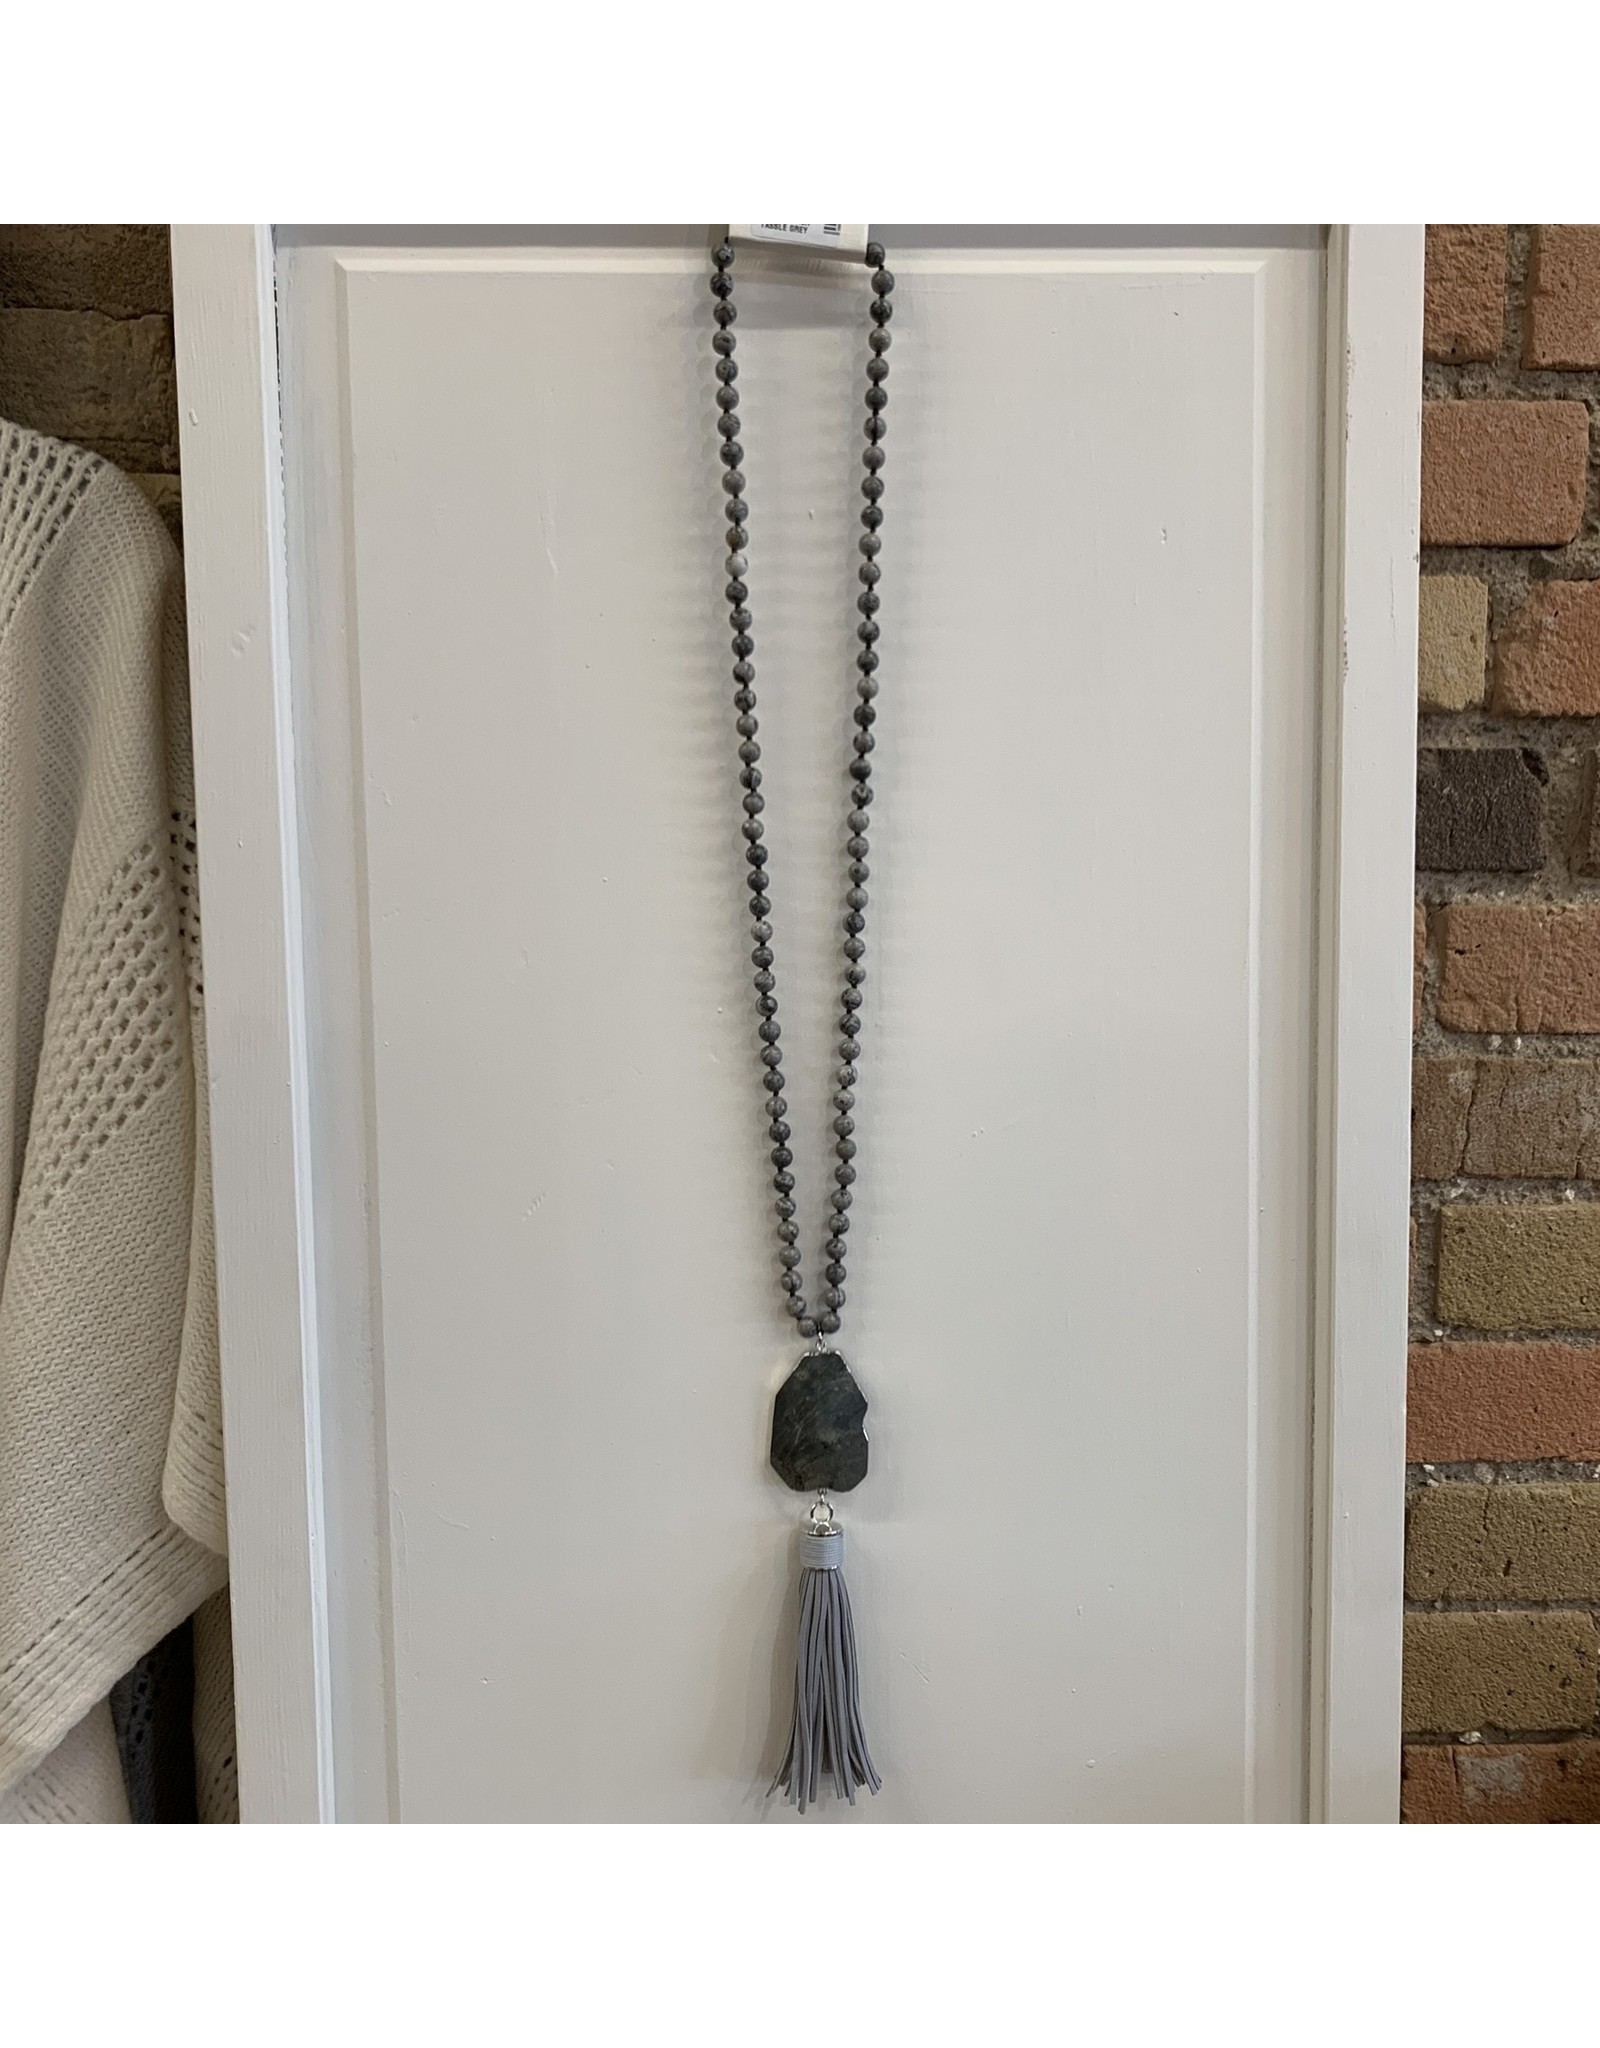 BEADED NECKLACE WITH STONE PENDANT AND LEATHER TASSLE